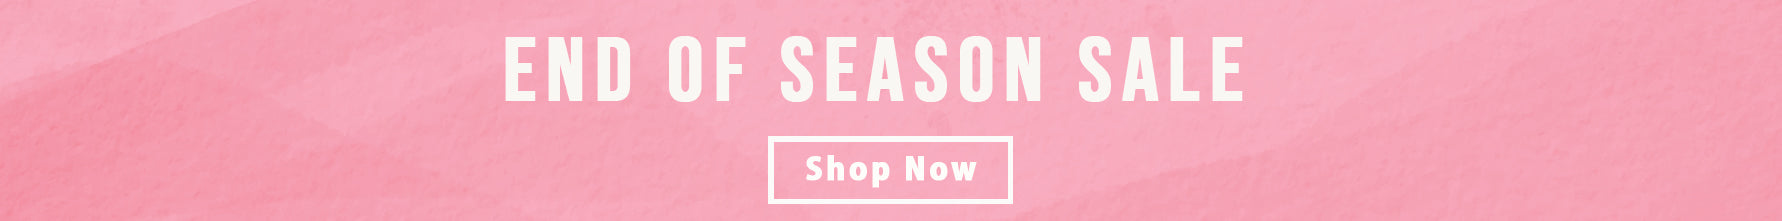 Save up to 80% in the Frock and Frill end of season sale!